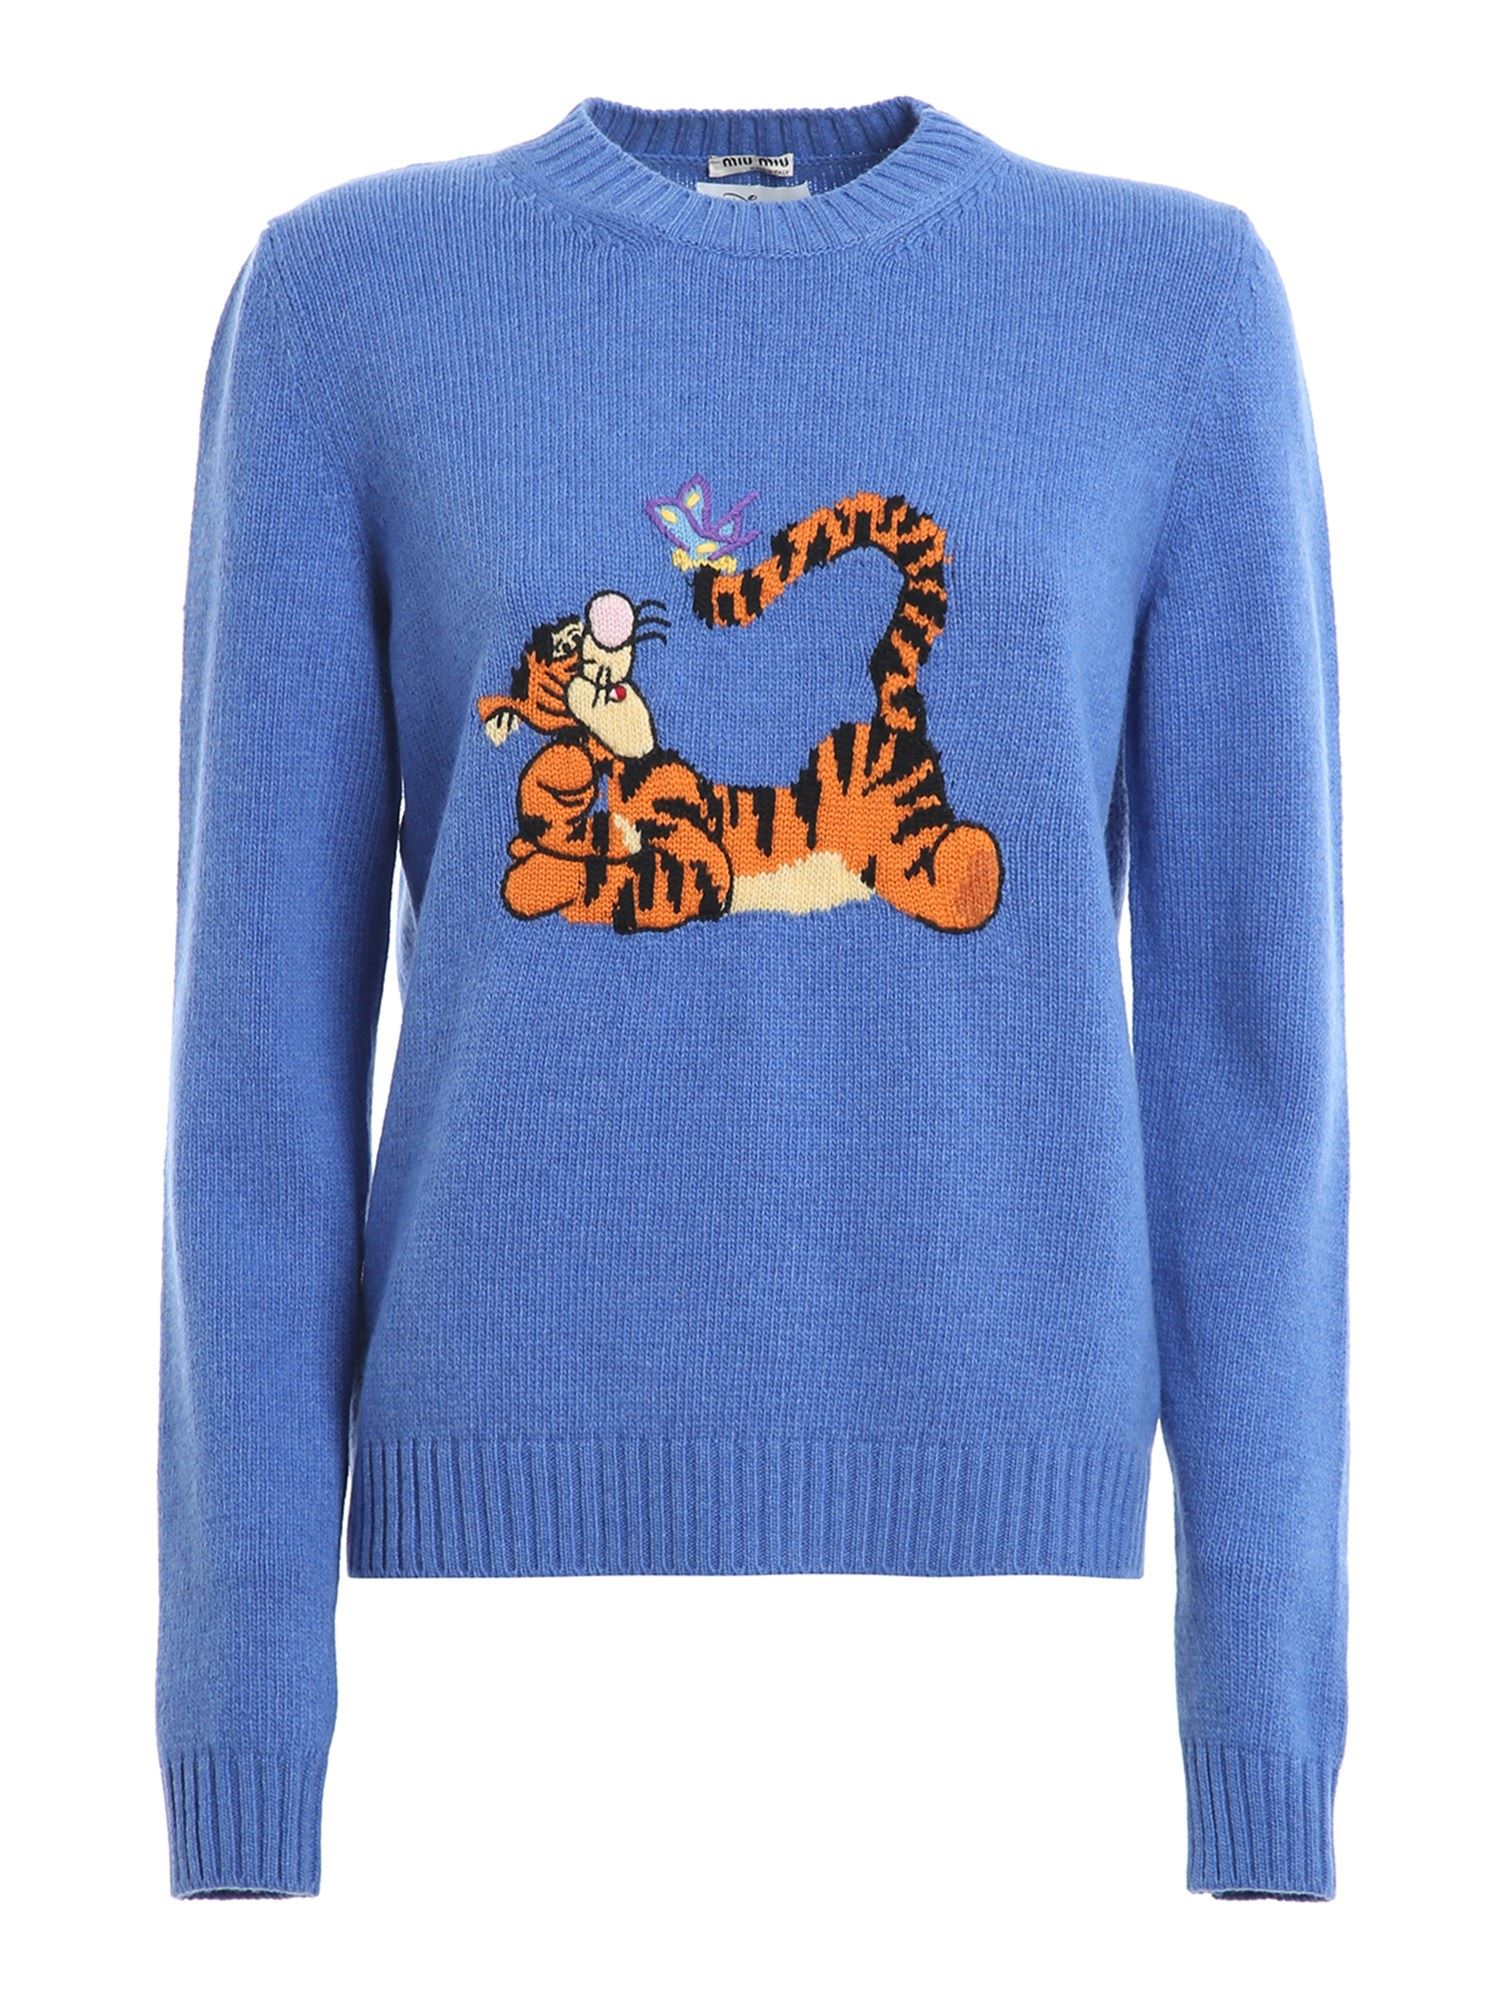 Miu Miu Sweaters TIGGER INTARSIA SWEATER IN LIGHT BLUE